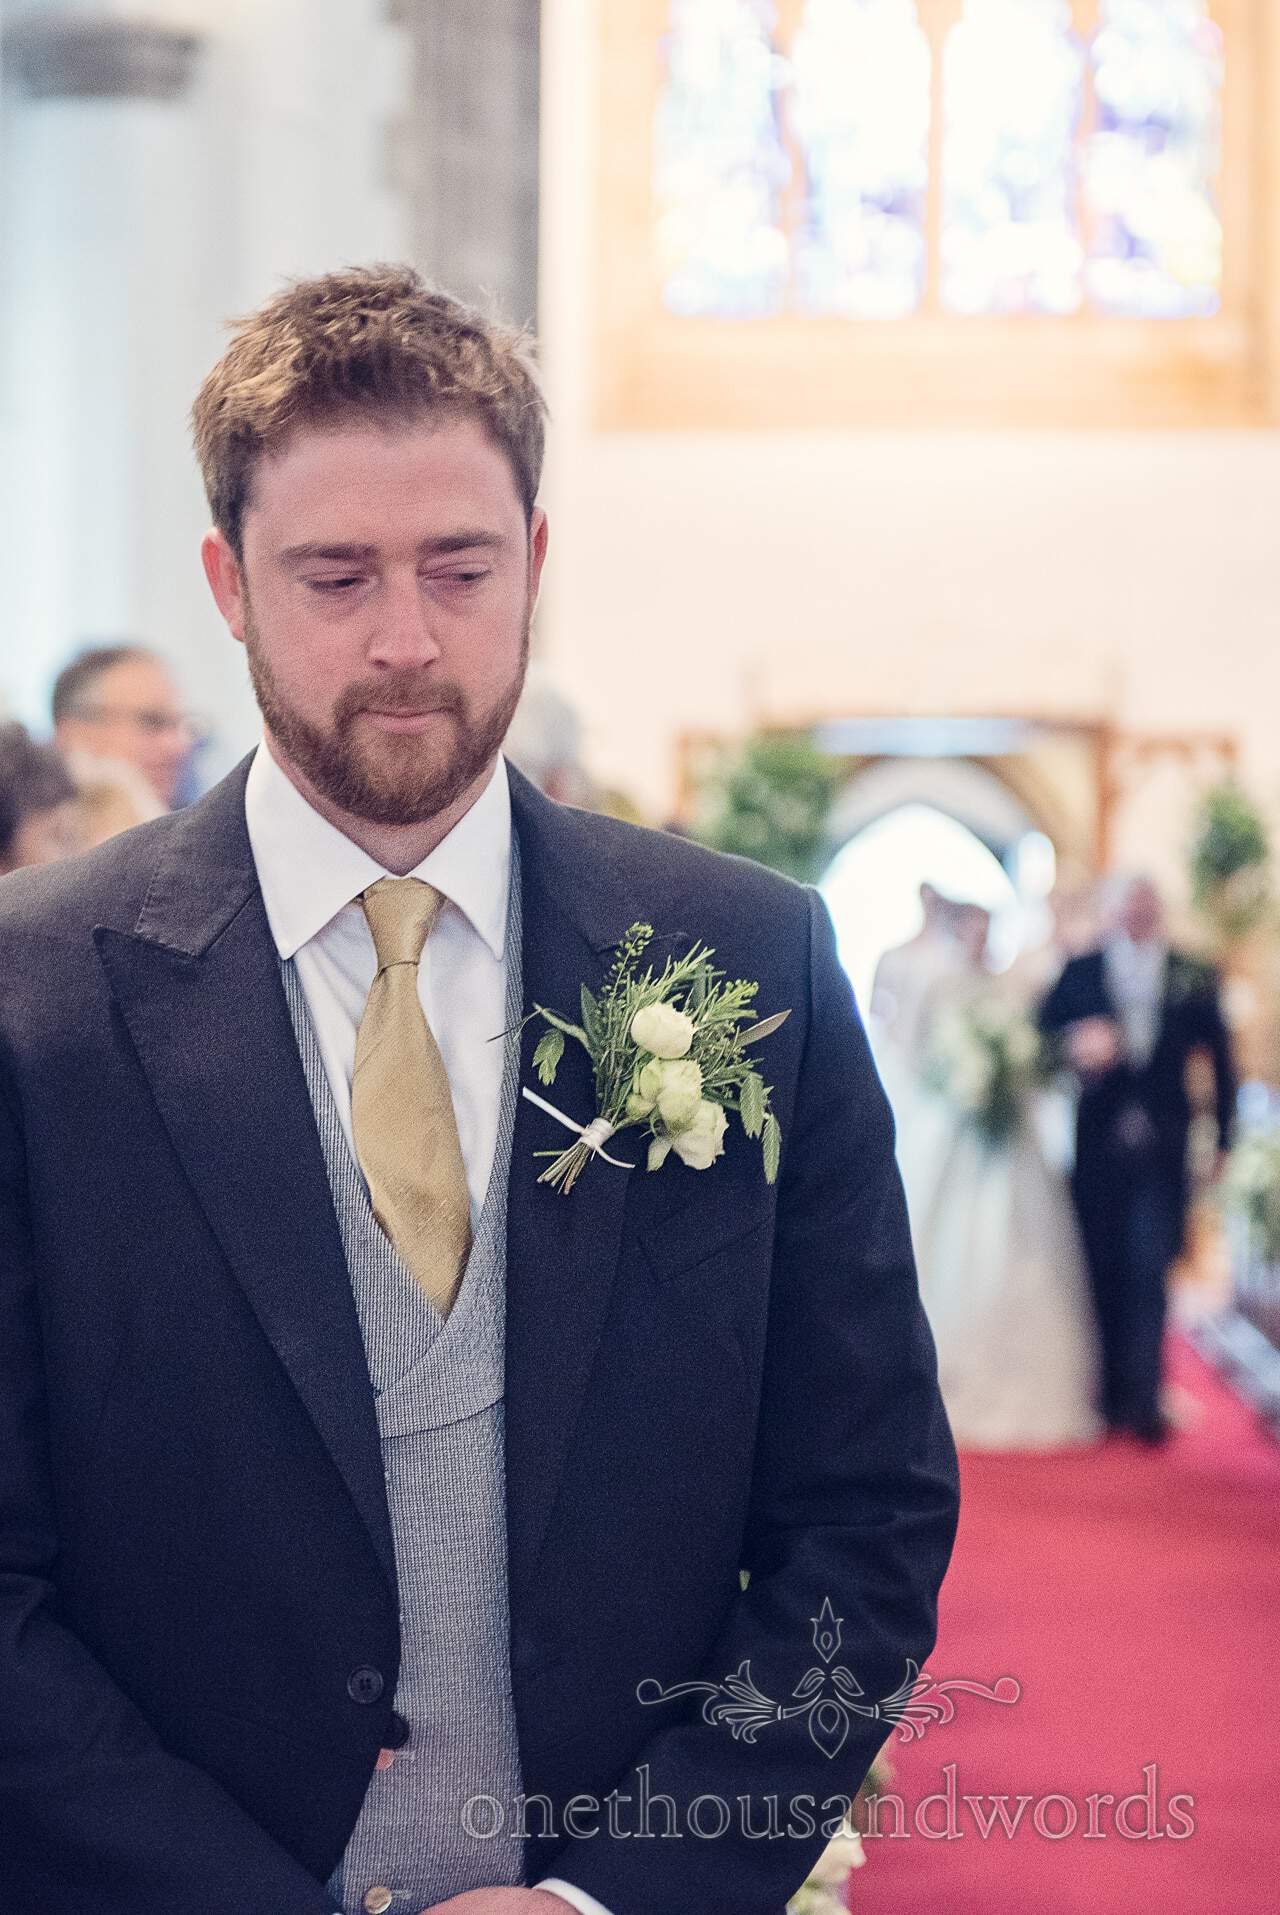 Groom waits for bride to come down the aisle at St Mary's Church Wareham